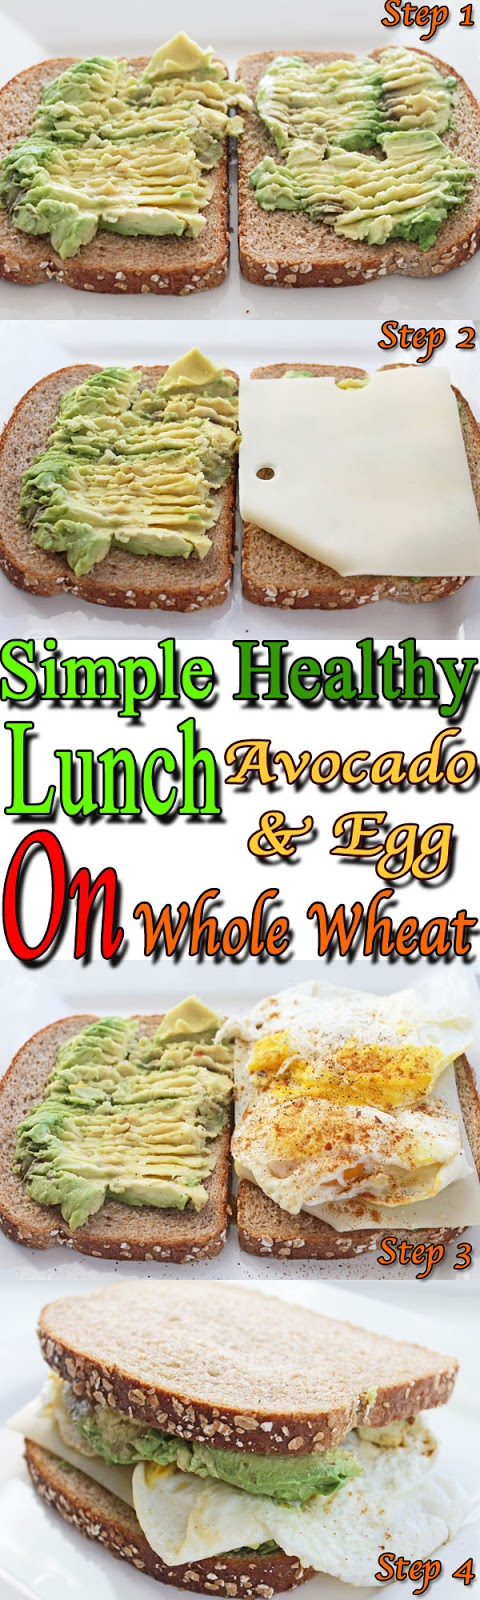 simple healthy meals lunch